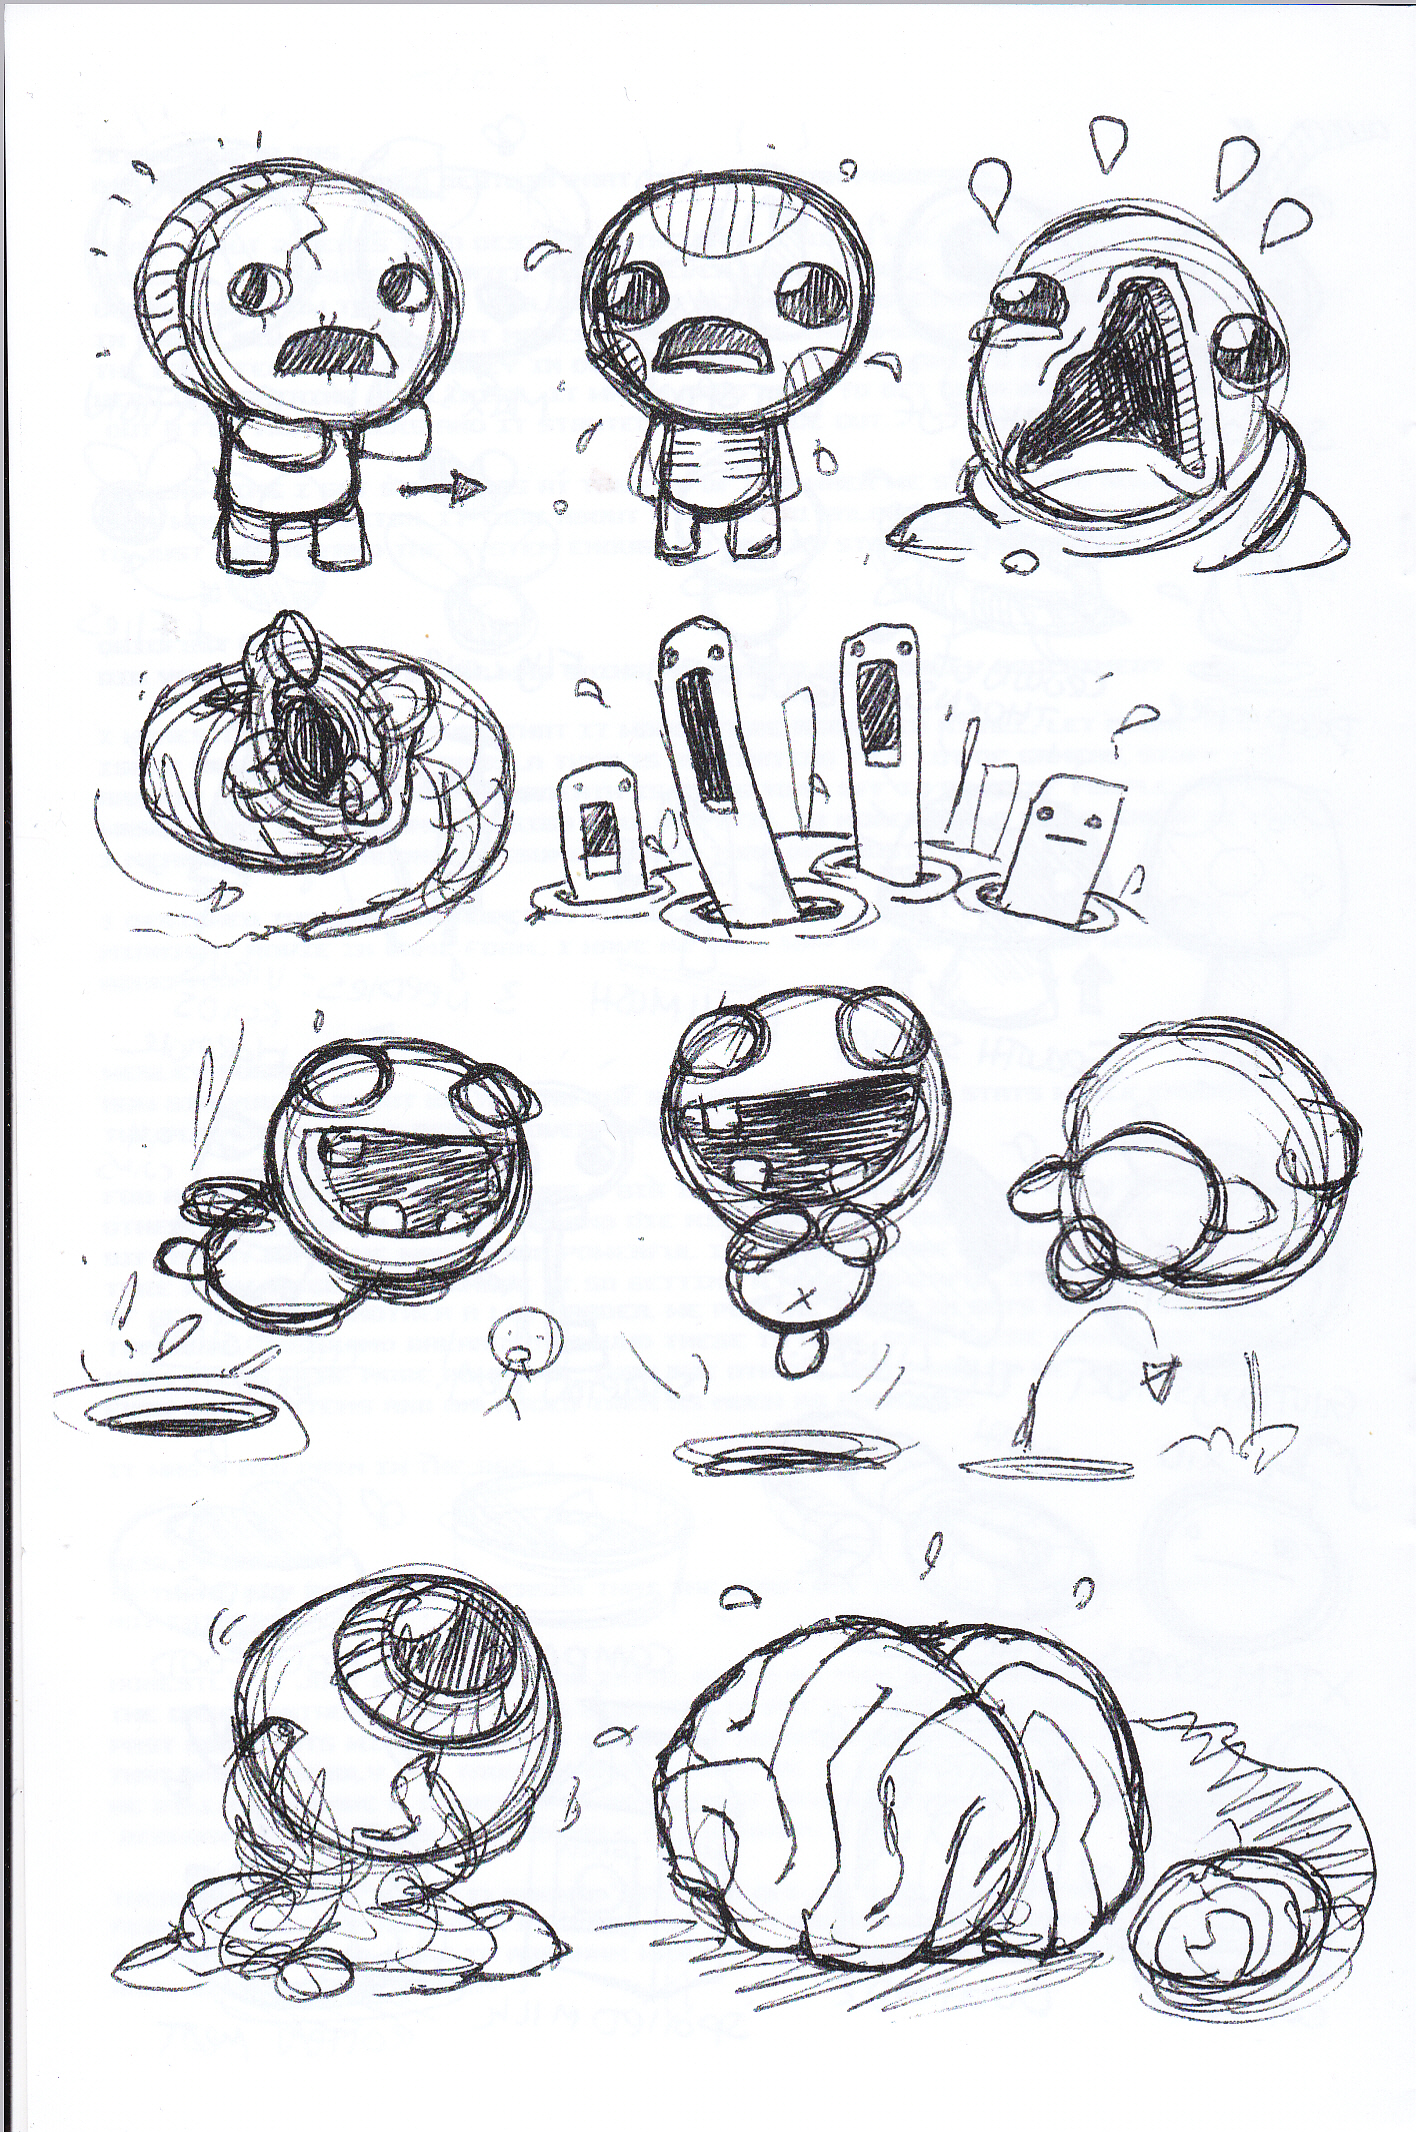 image page 35 jpg the binding of isaac wiki fandom powered